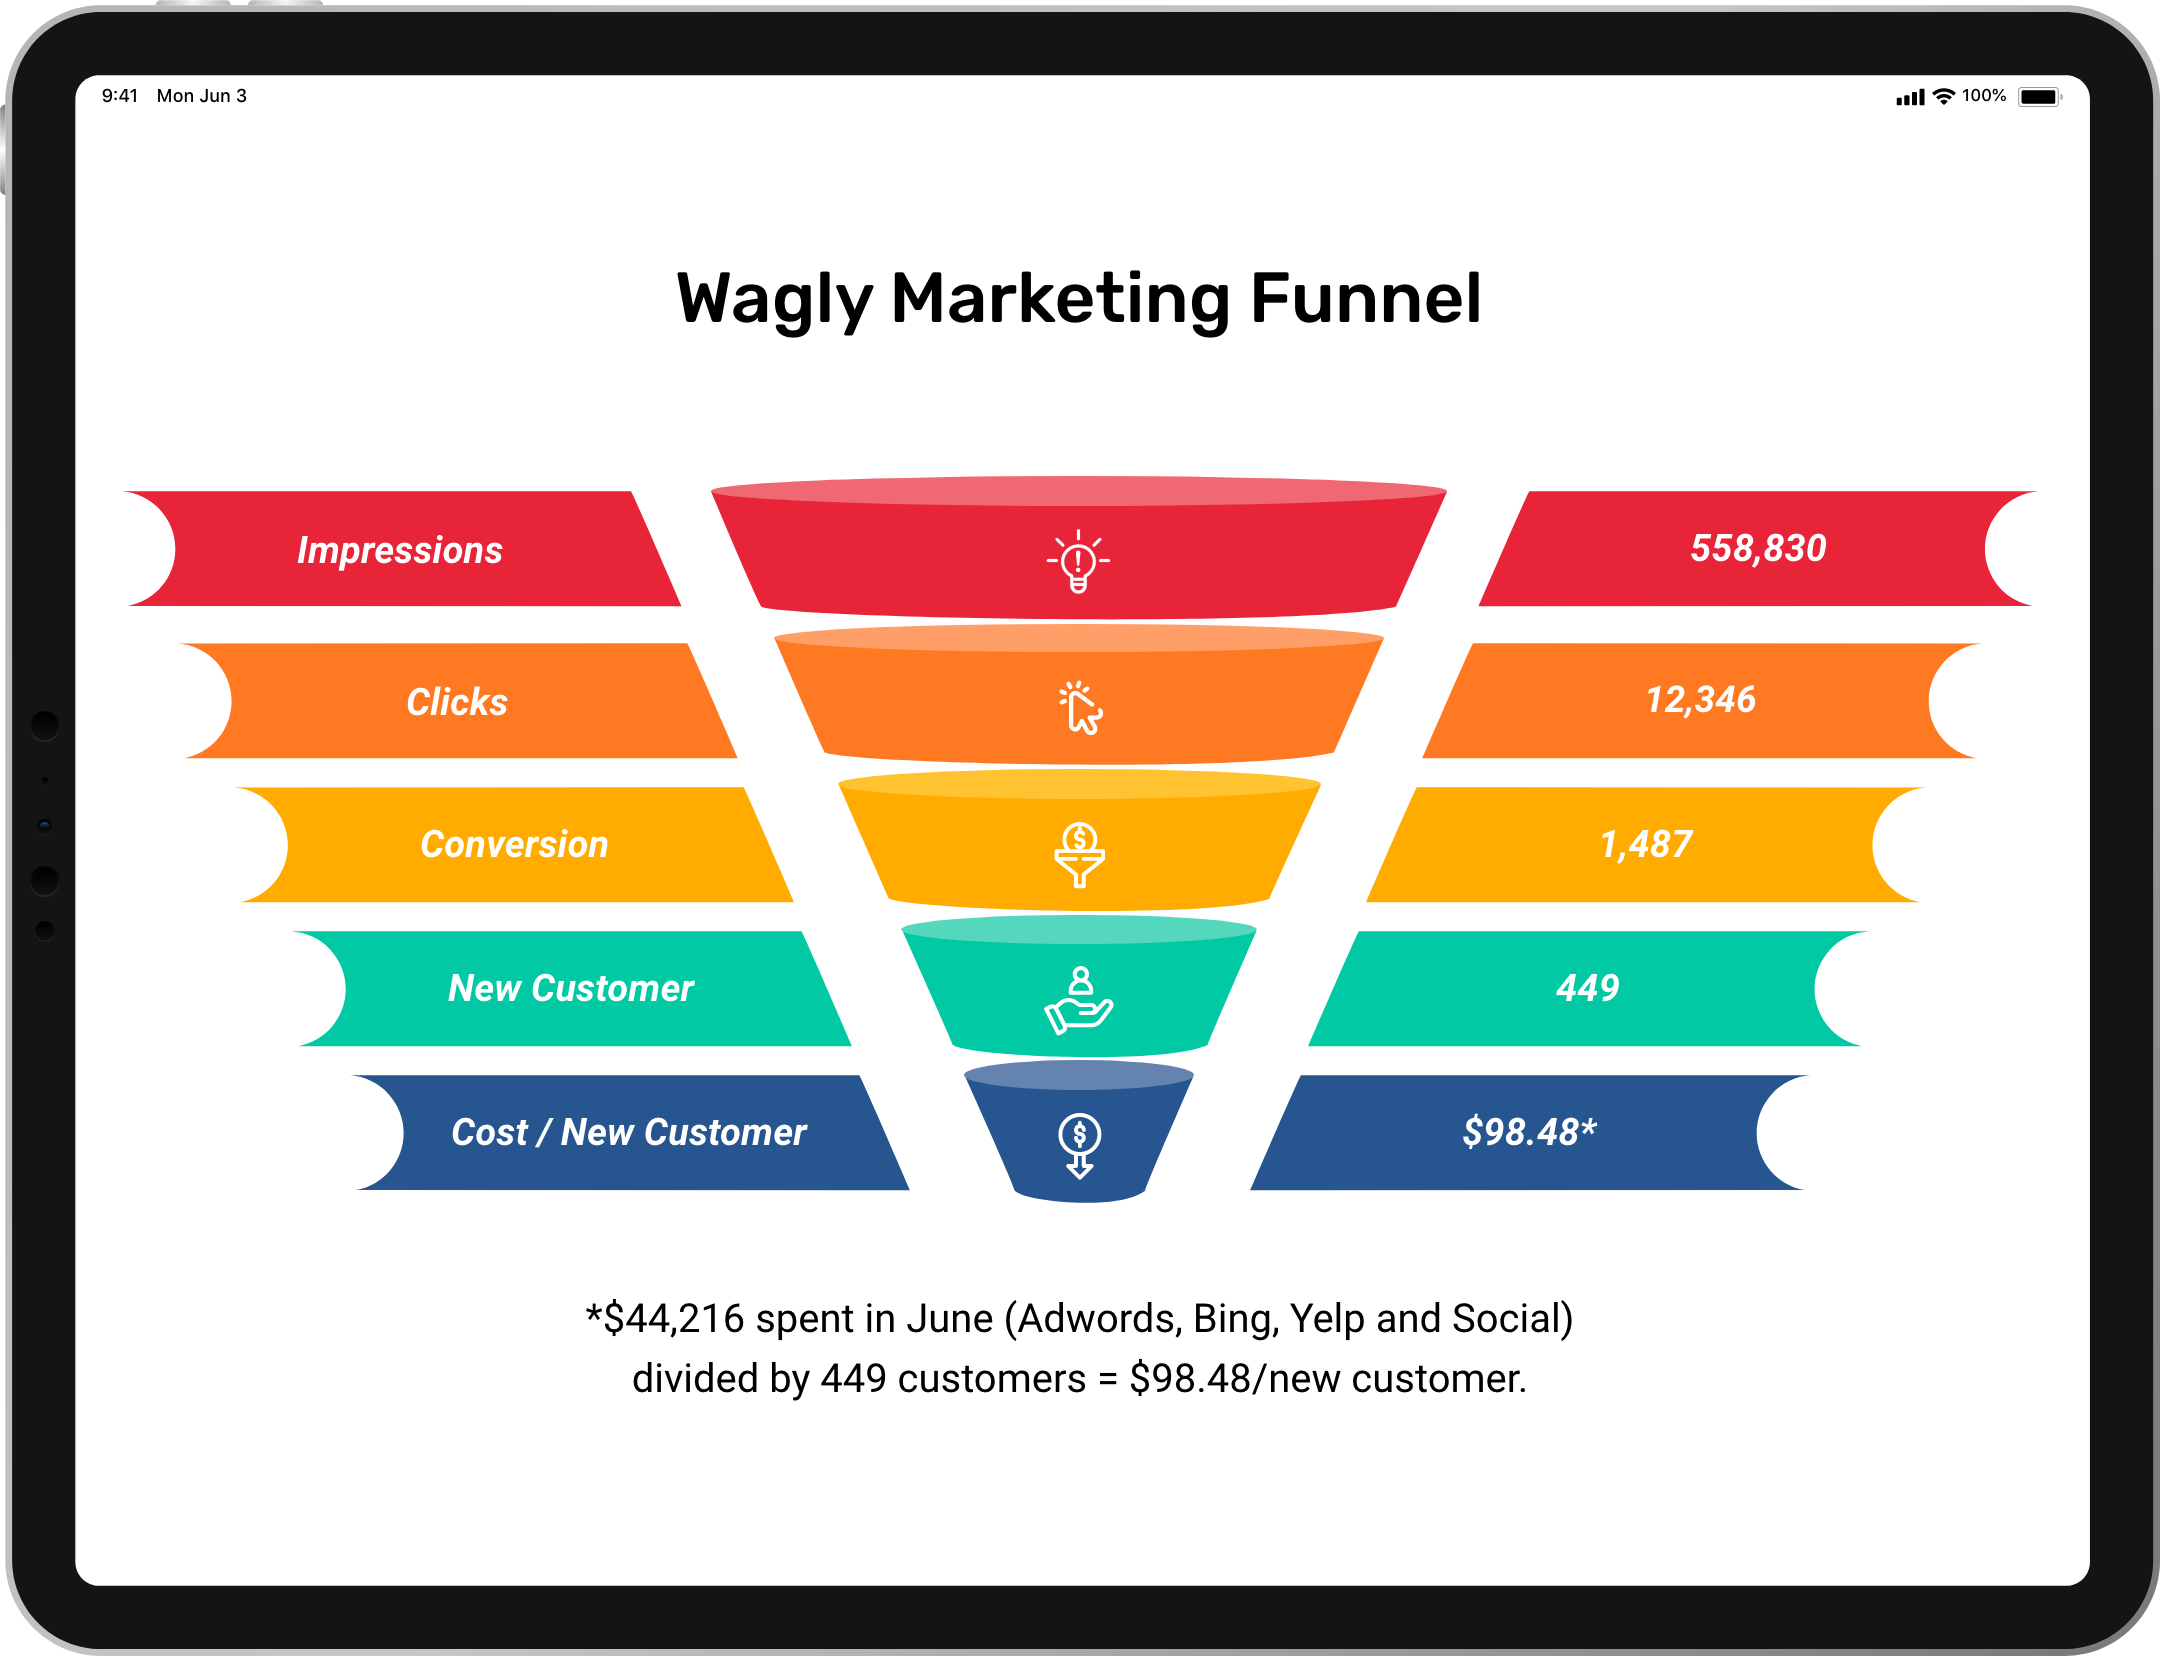 Wagly Marketing Funnel